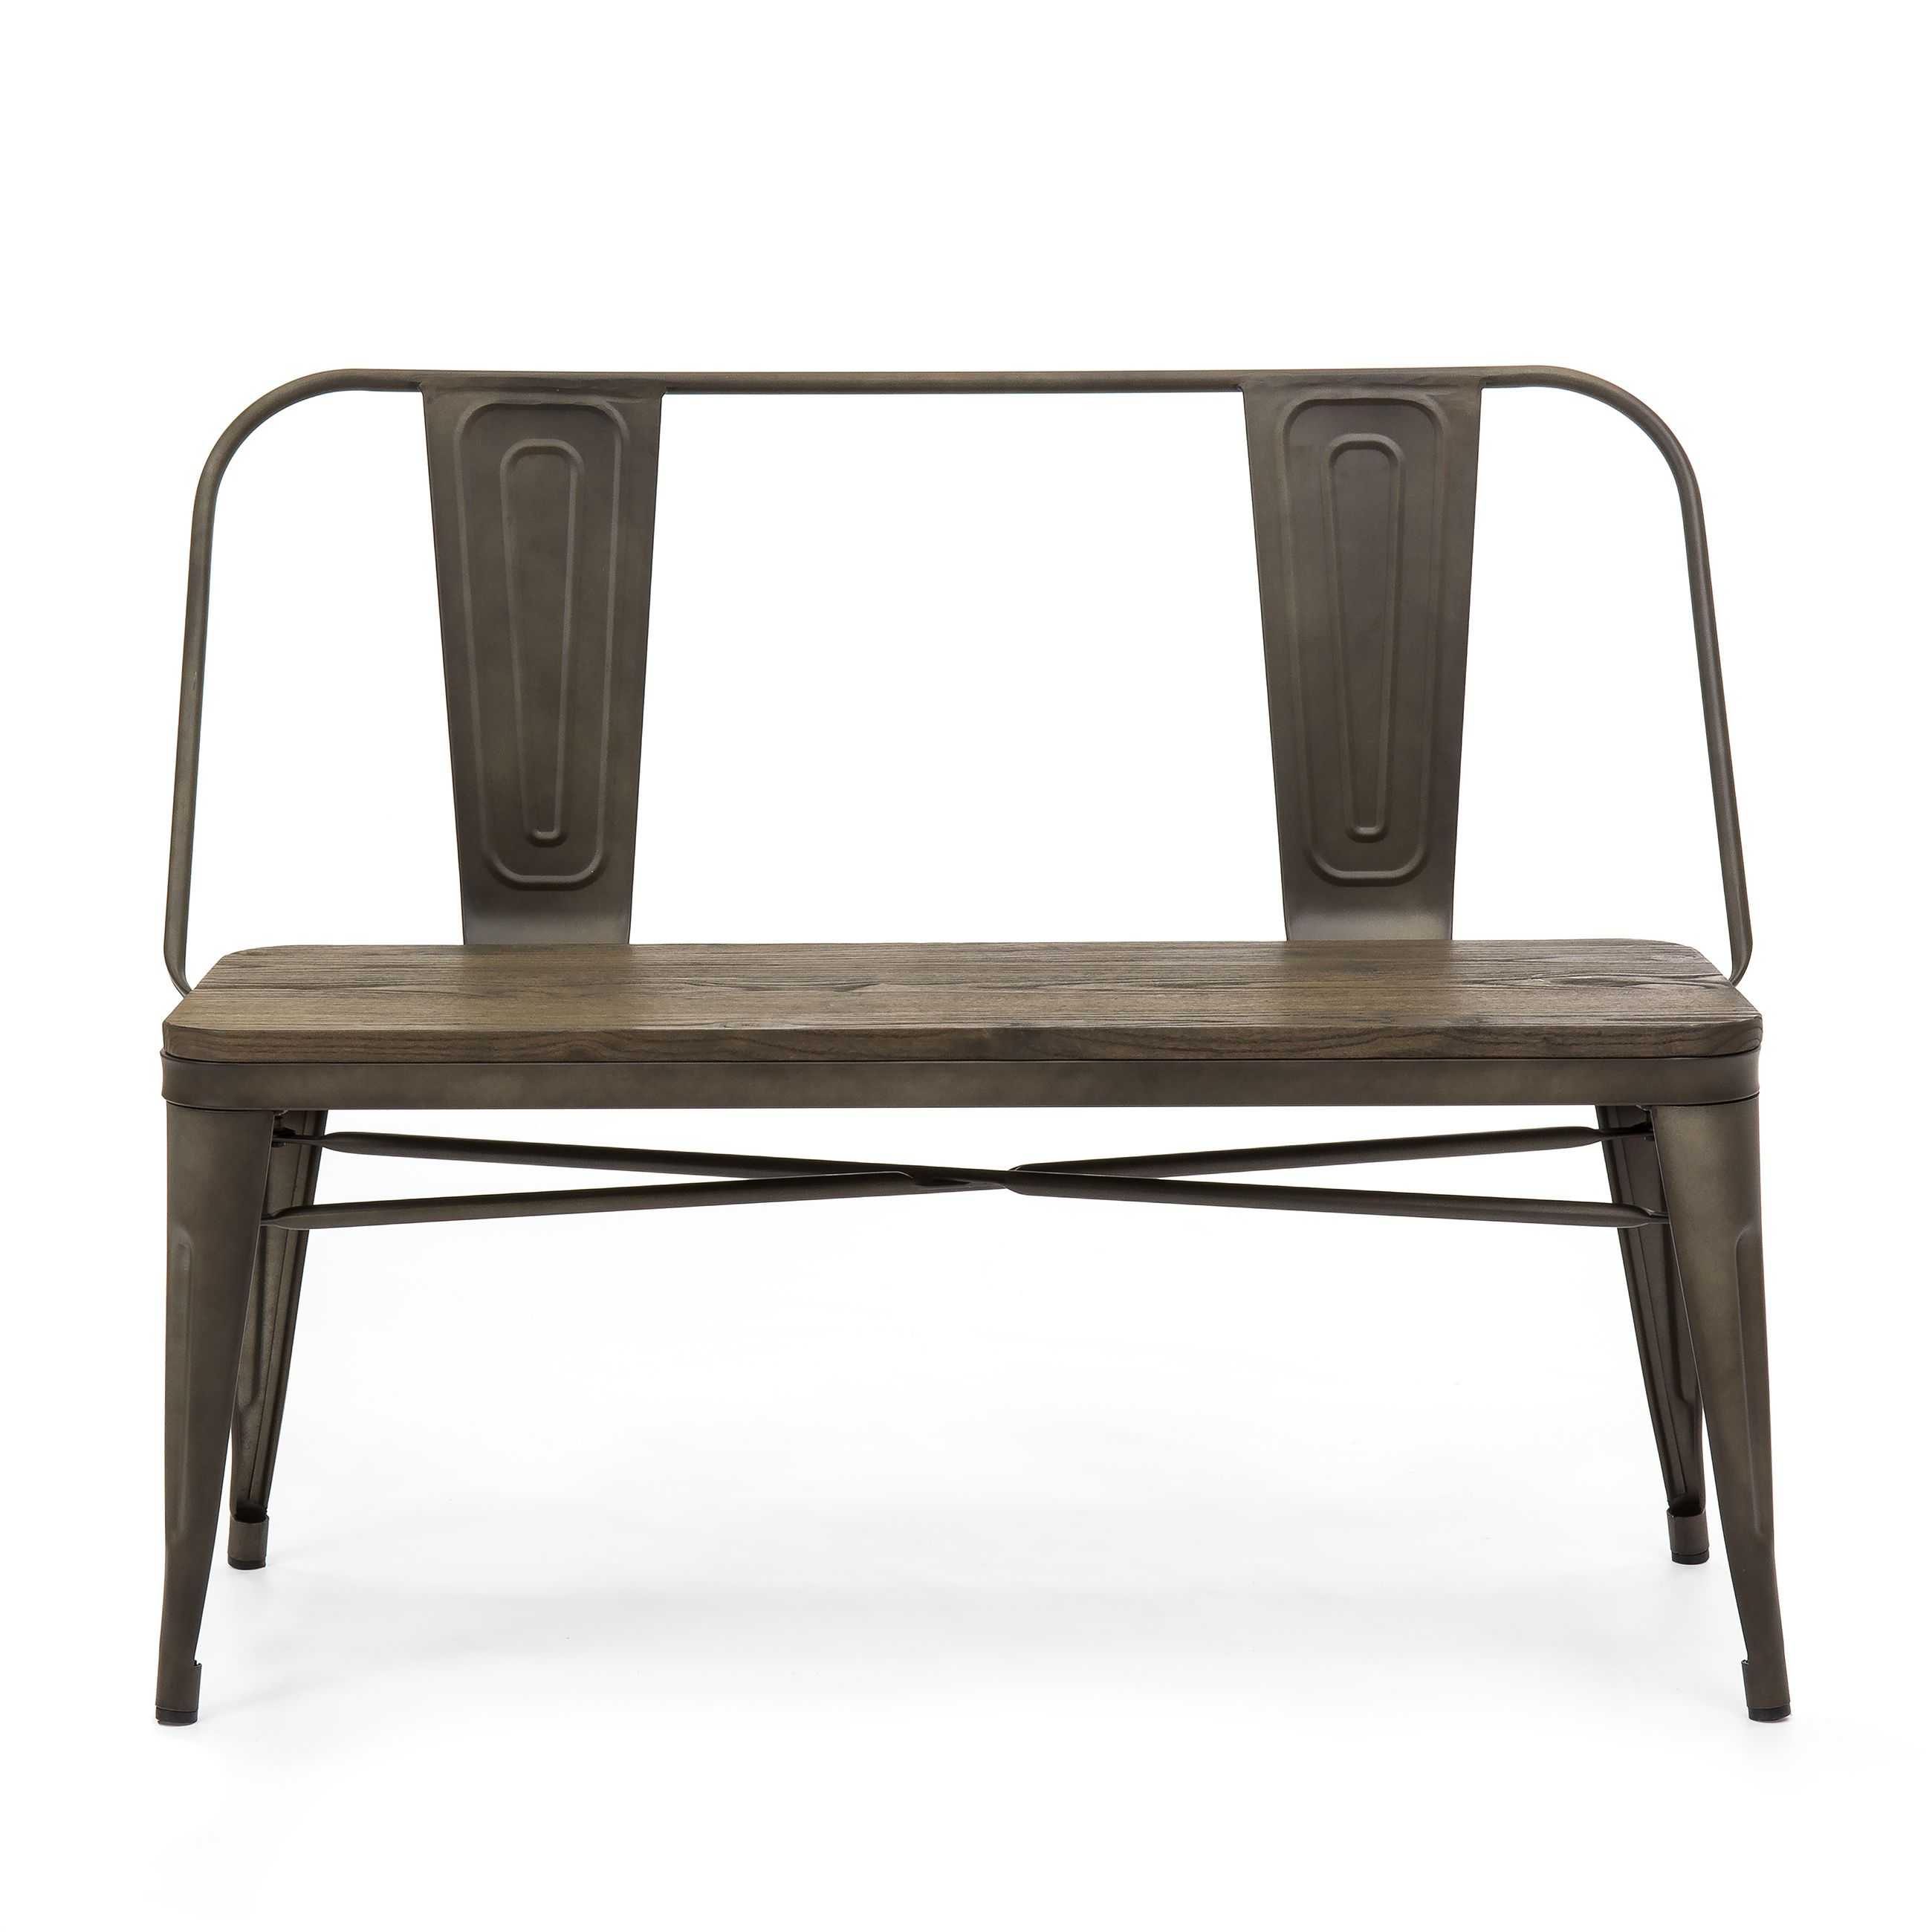 Best choice products 42in industrial metal rustic